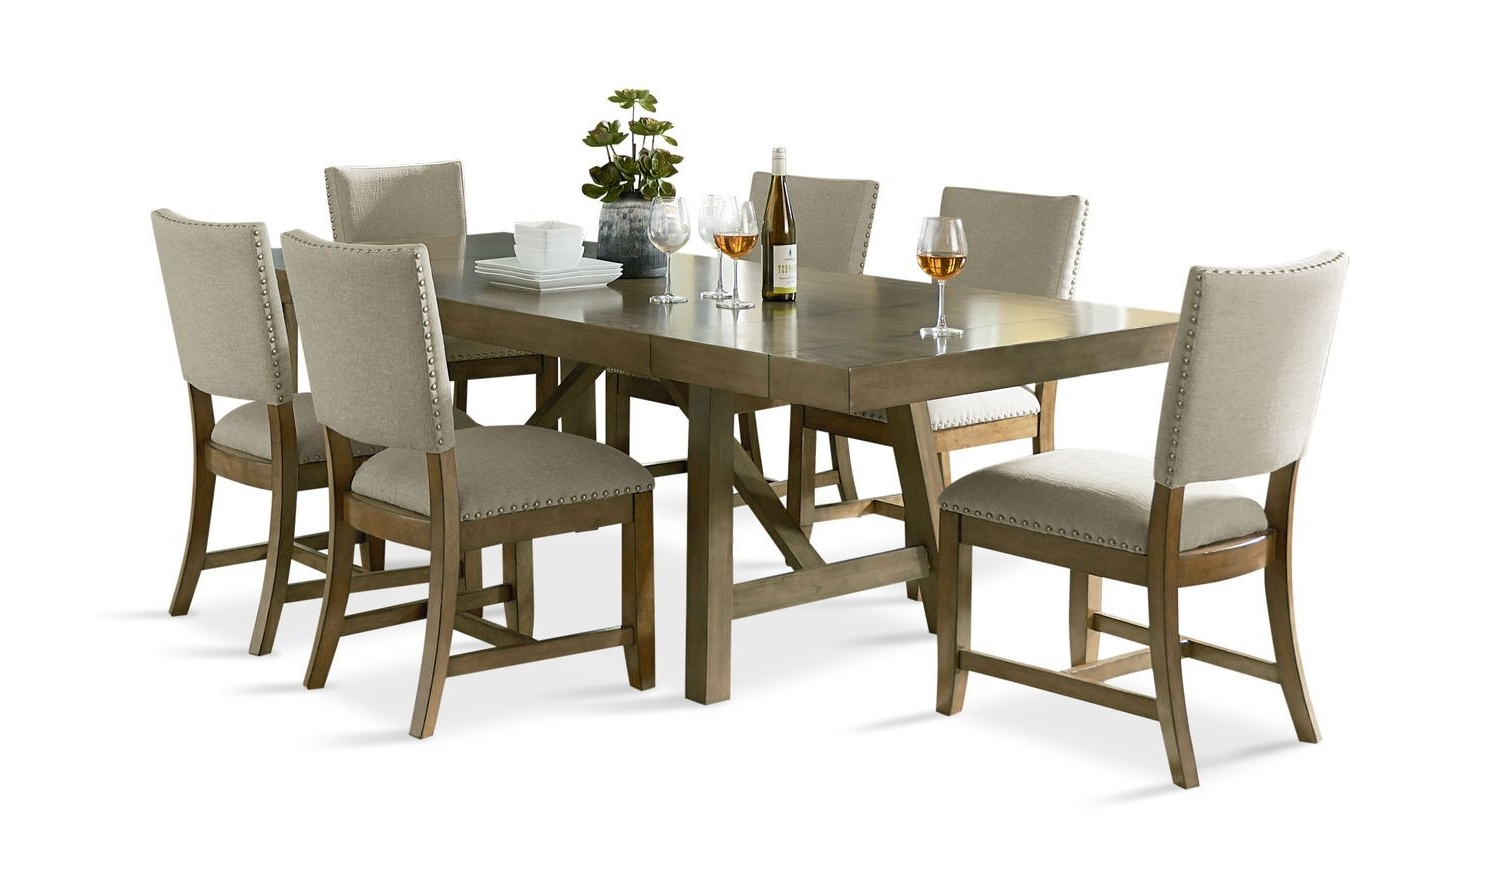 Hampton Counter-Height Dining Table And 6 Upholstered Stoo inside 2017 Gavin 7 Piece Dining Sets With Clint Side Chairs